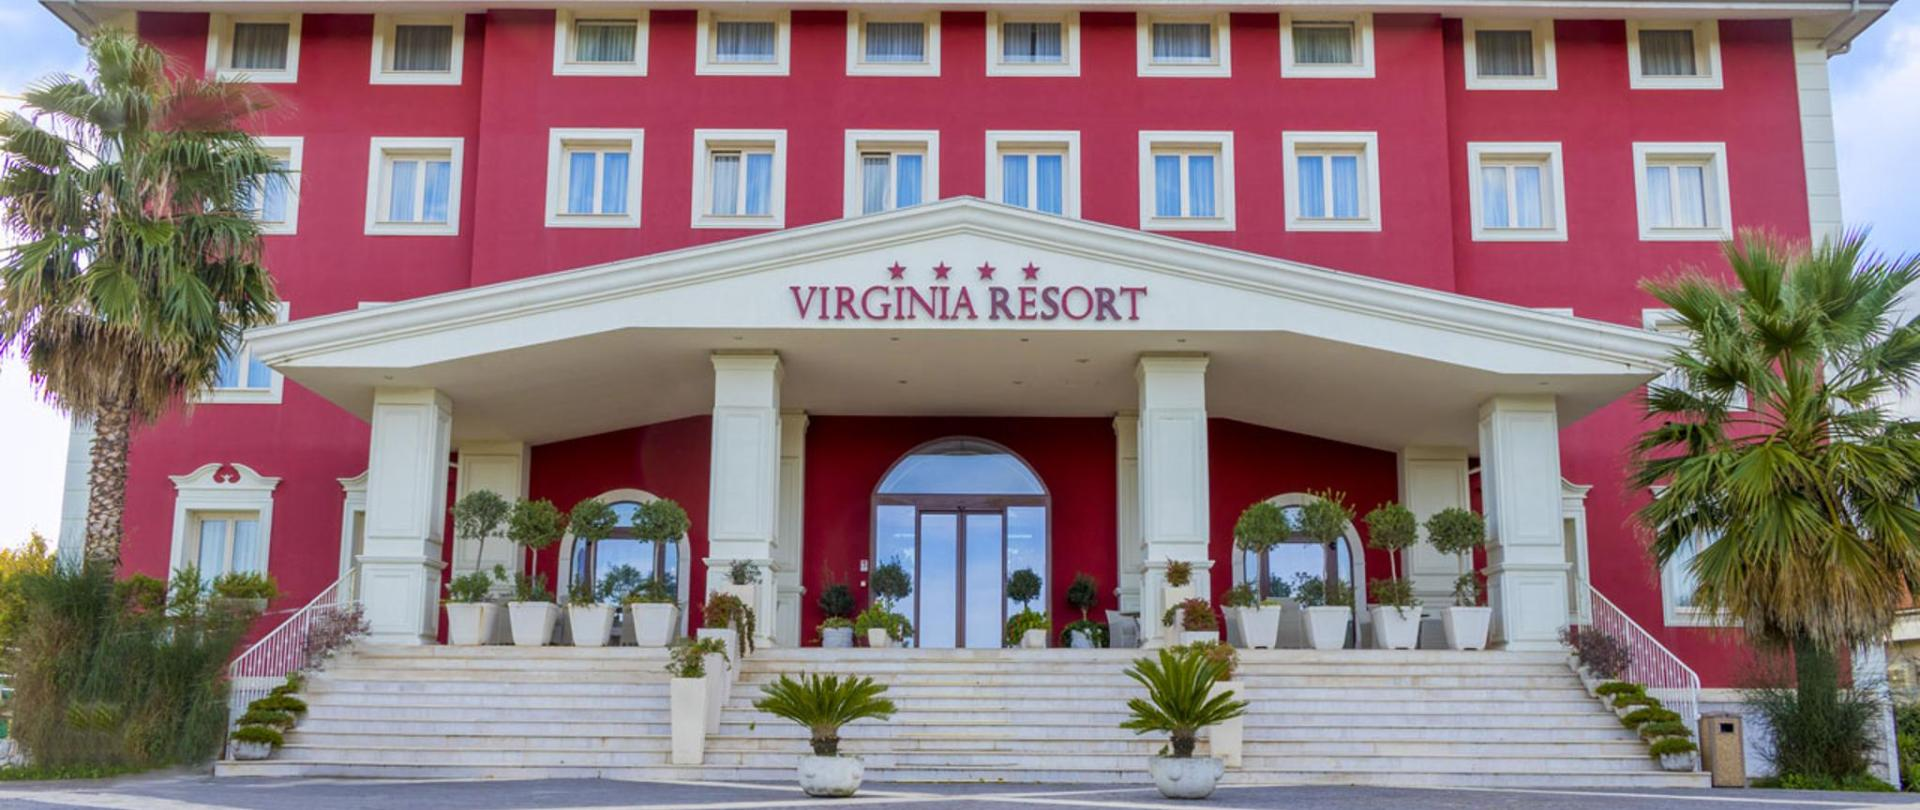 VIRGINIA-RESORT-ingresso_p.jpg